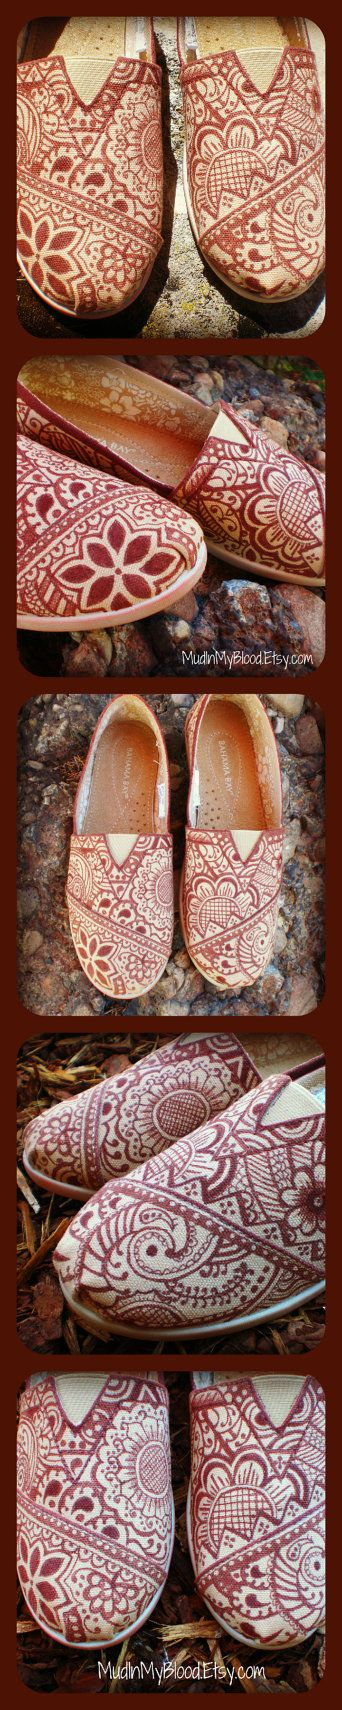 Henna Design TOMS Style Shoes- Made To Order on Wanelo